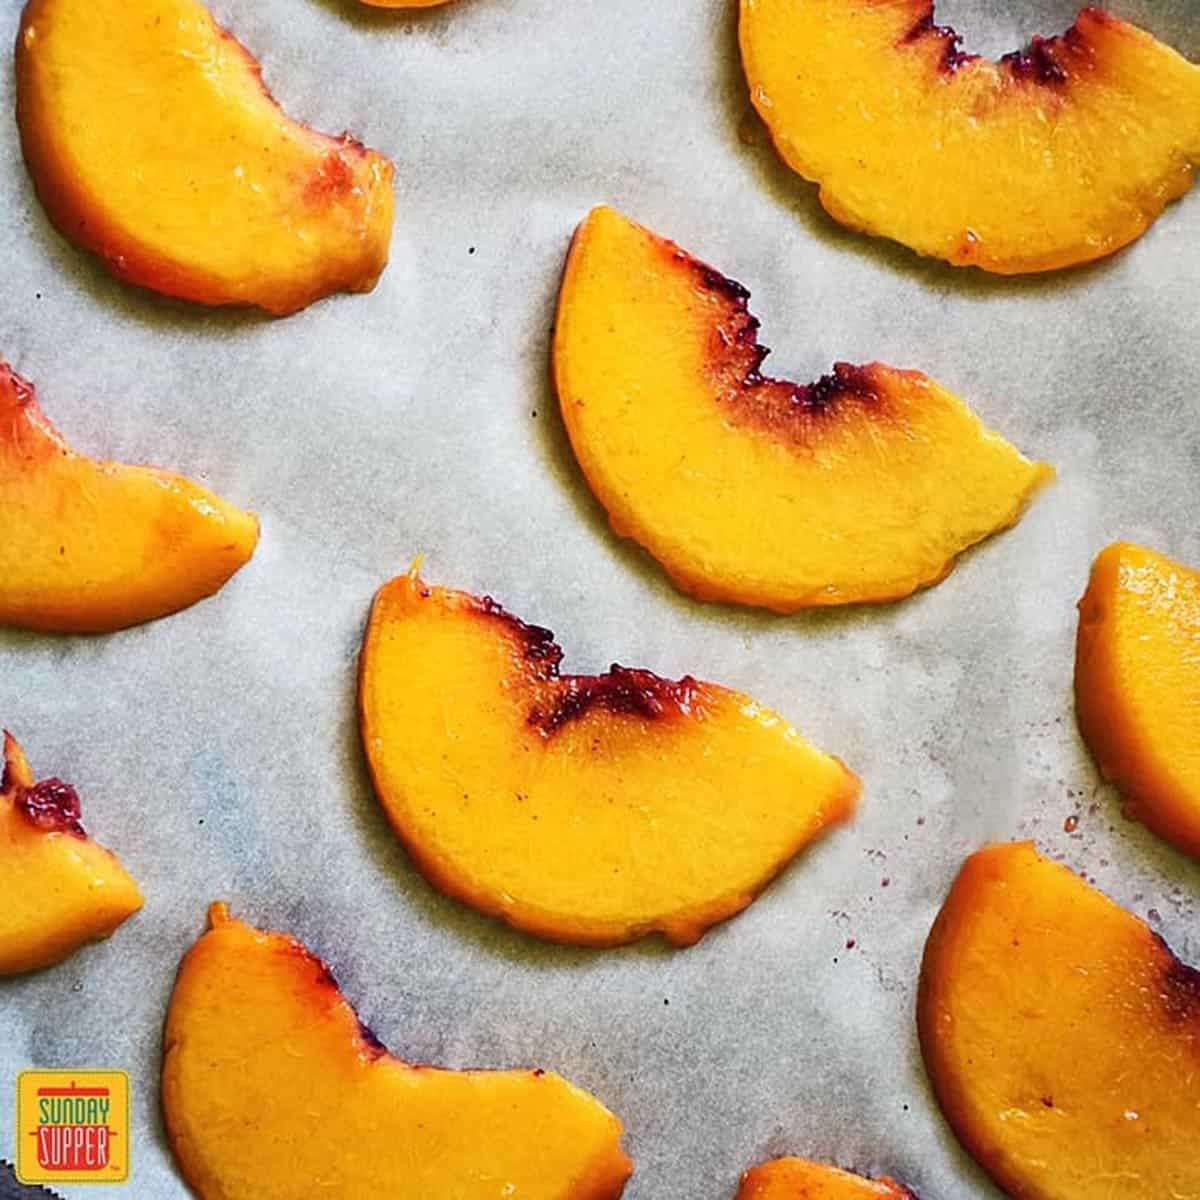 Peeled peach slices on parchment paper in rows